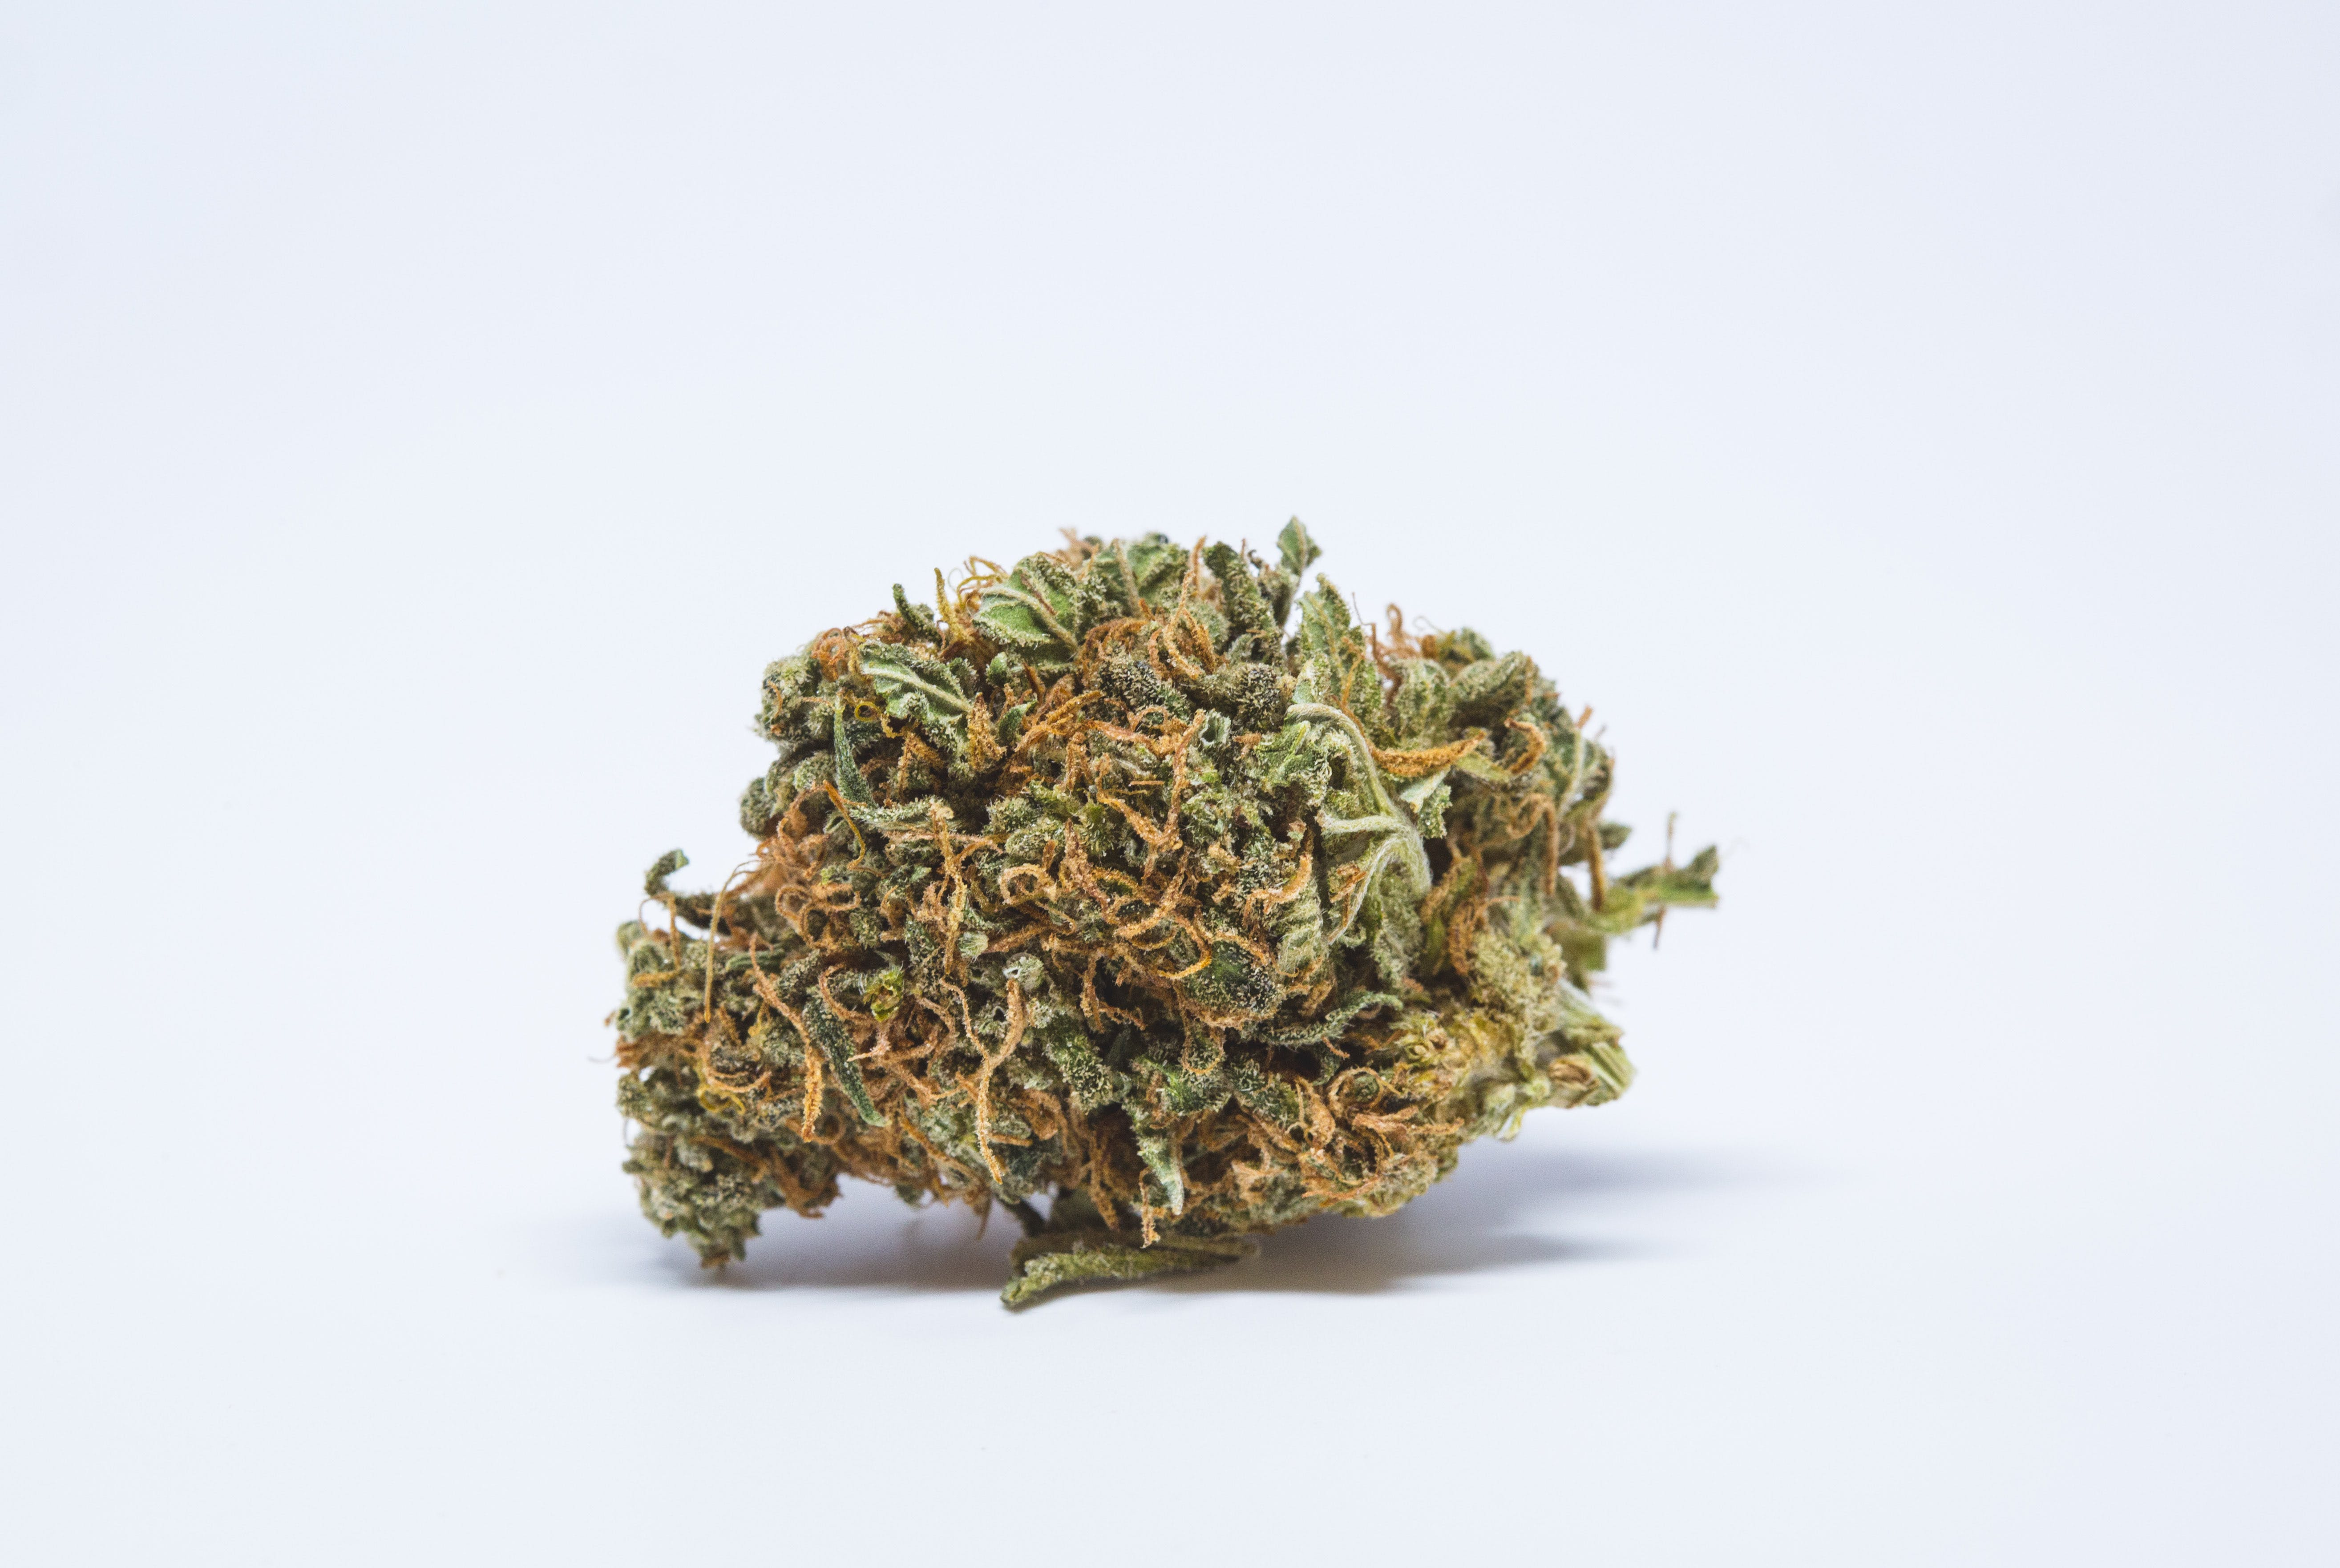 Willy's Wonder Weed; Willy's Wonder Cannabis Strain; Willy's Wonder Indica Marijuana Strain